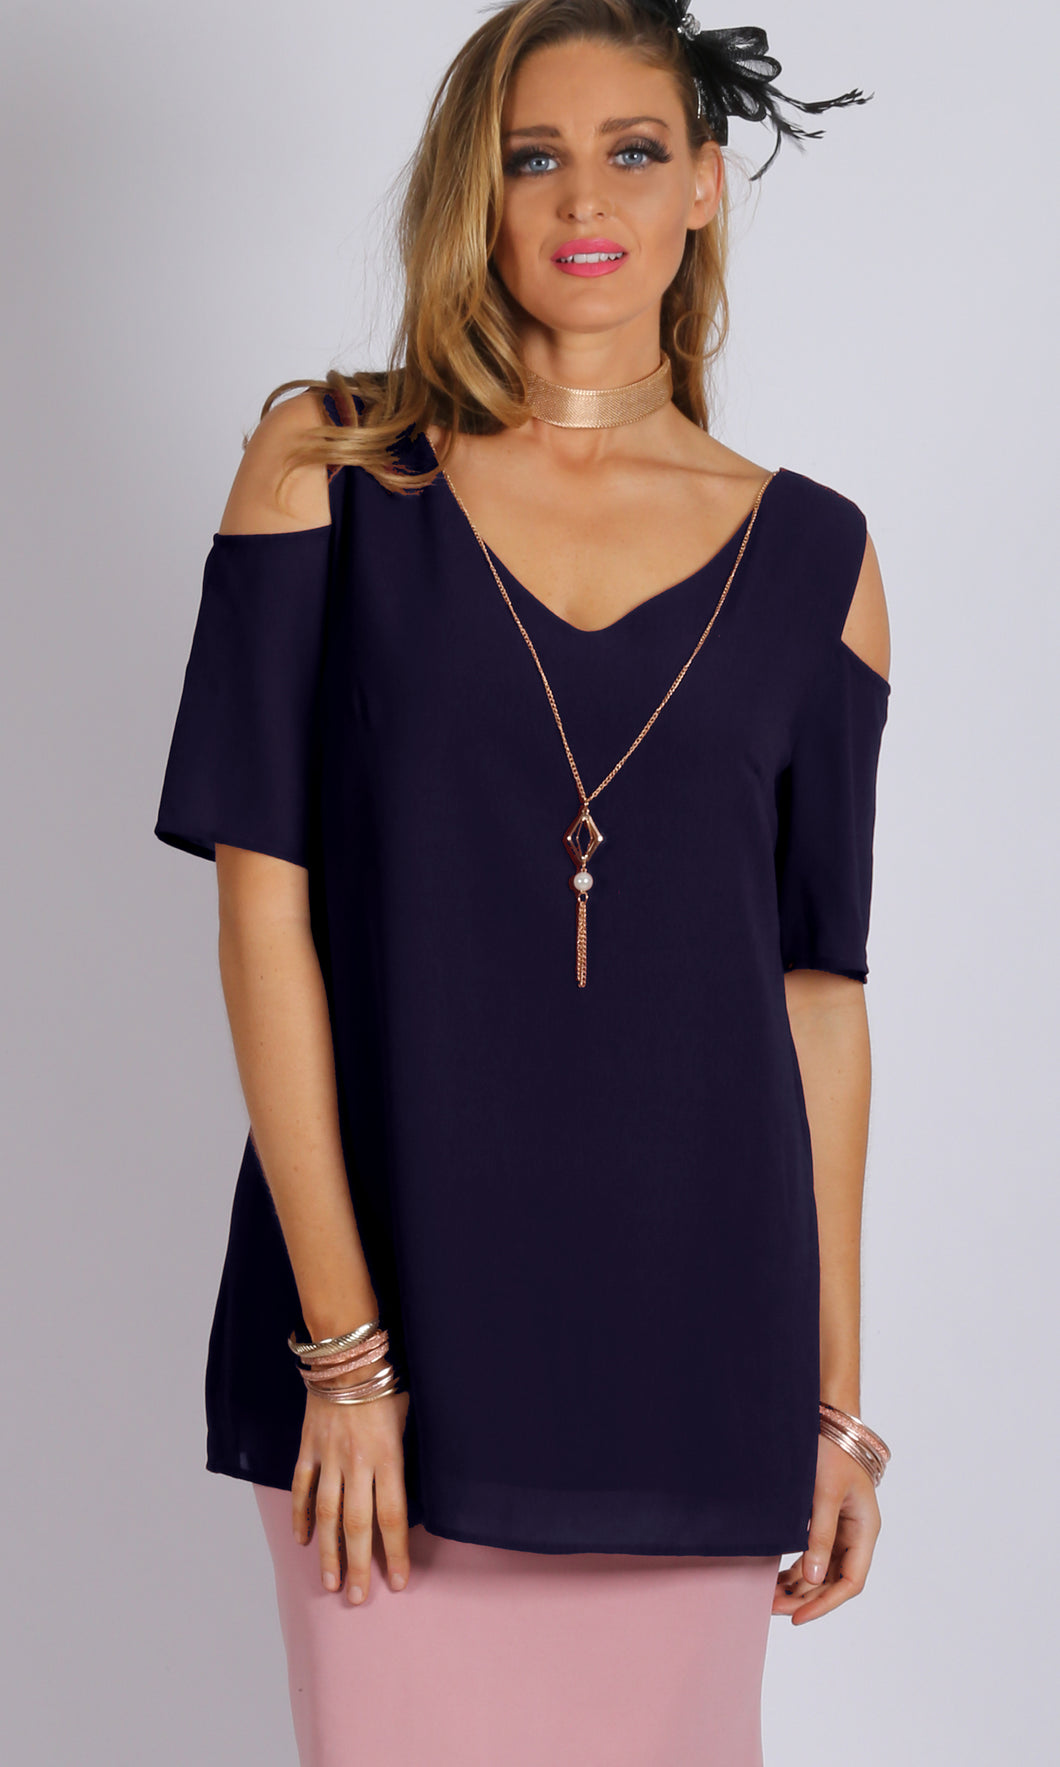 Cold Shoulder Top with Removable Necklace Hardware